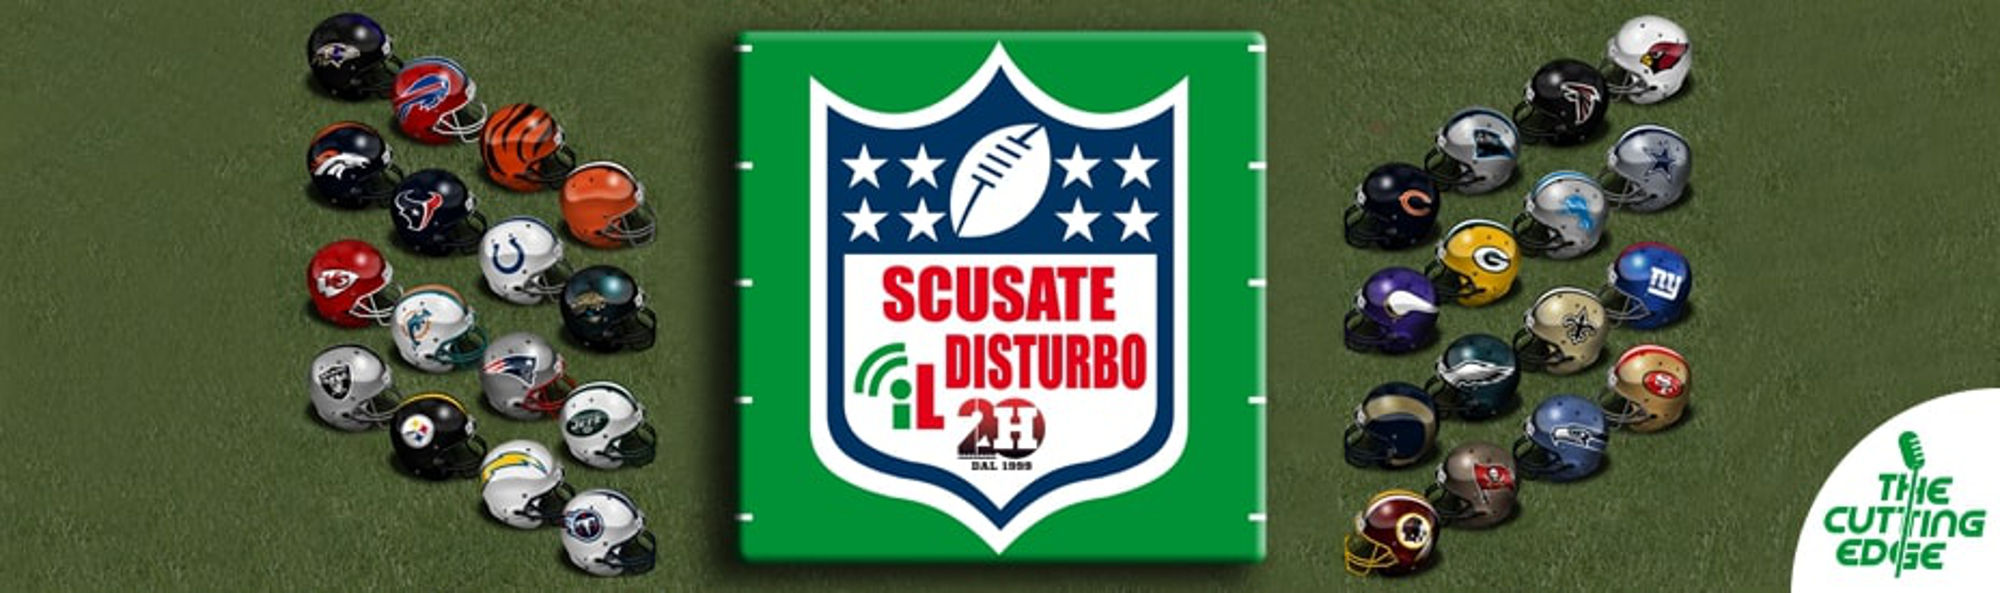 Scusate il Disturbo - Off Season E08